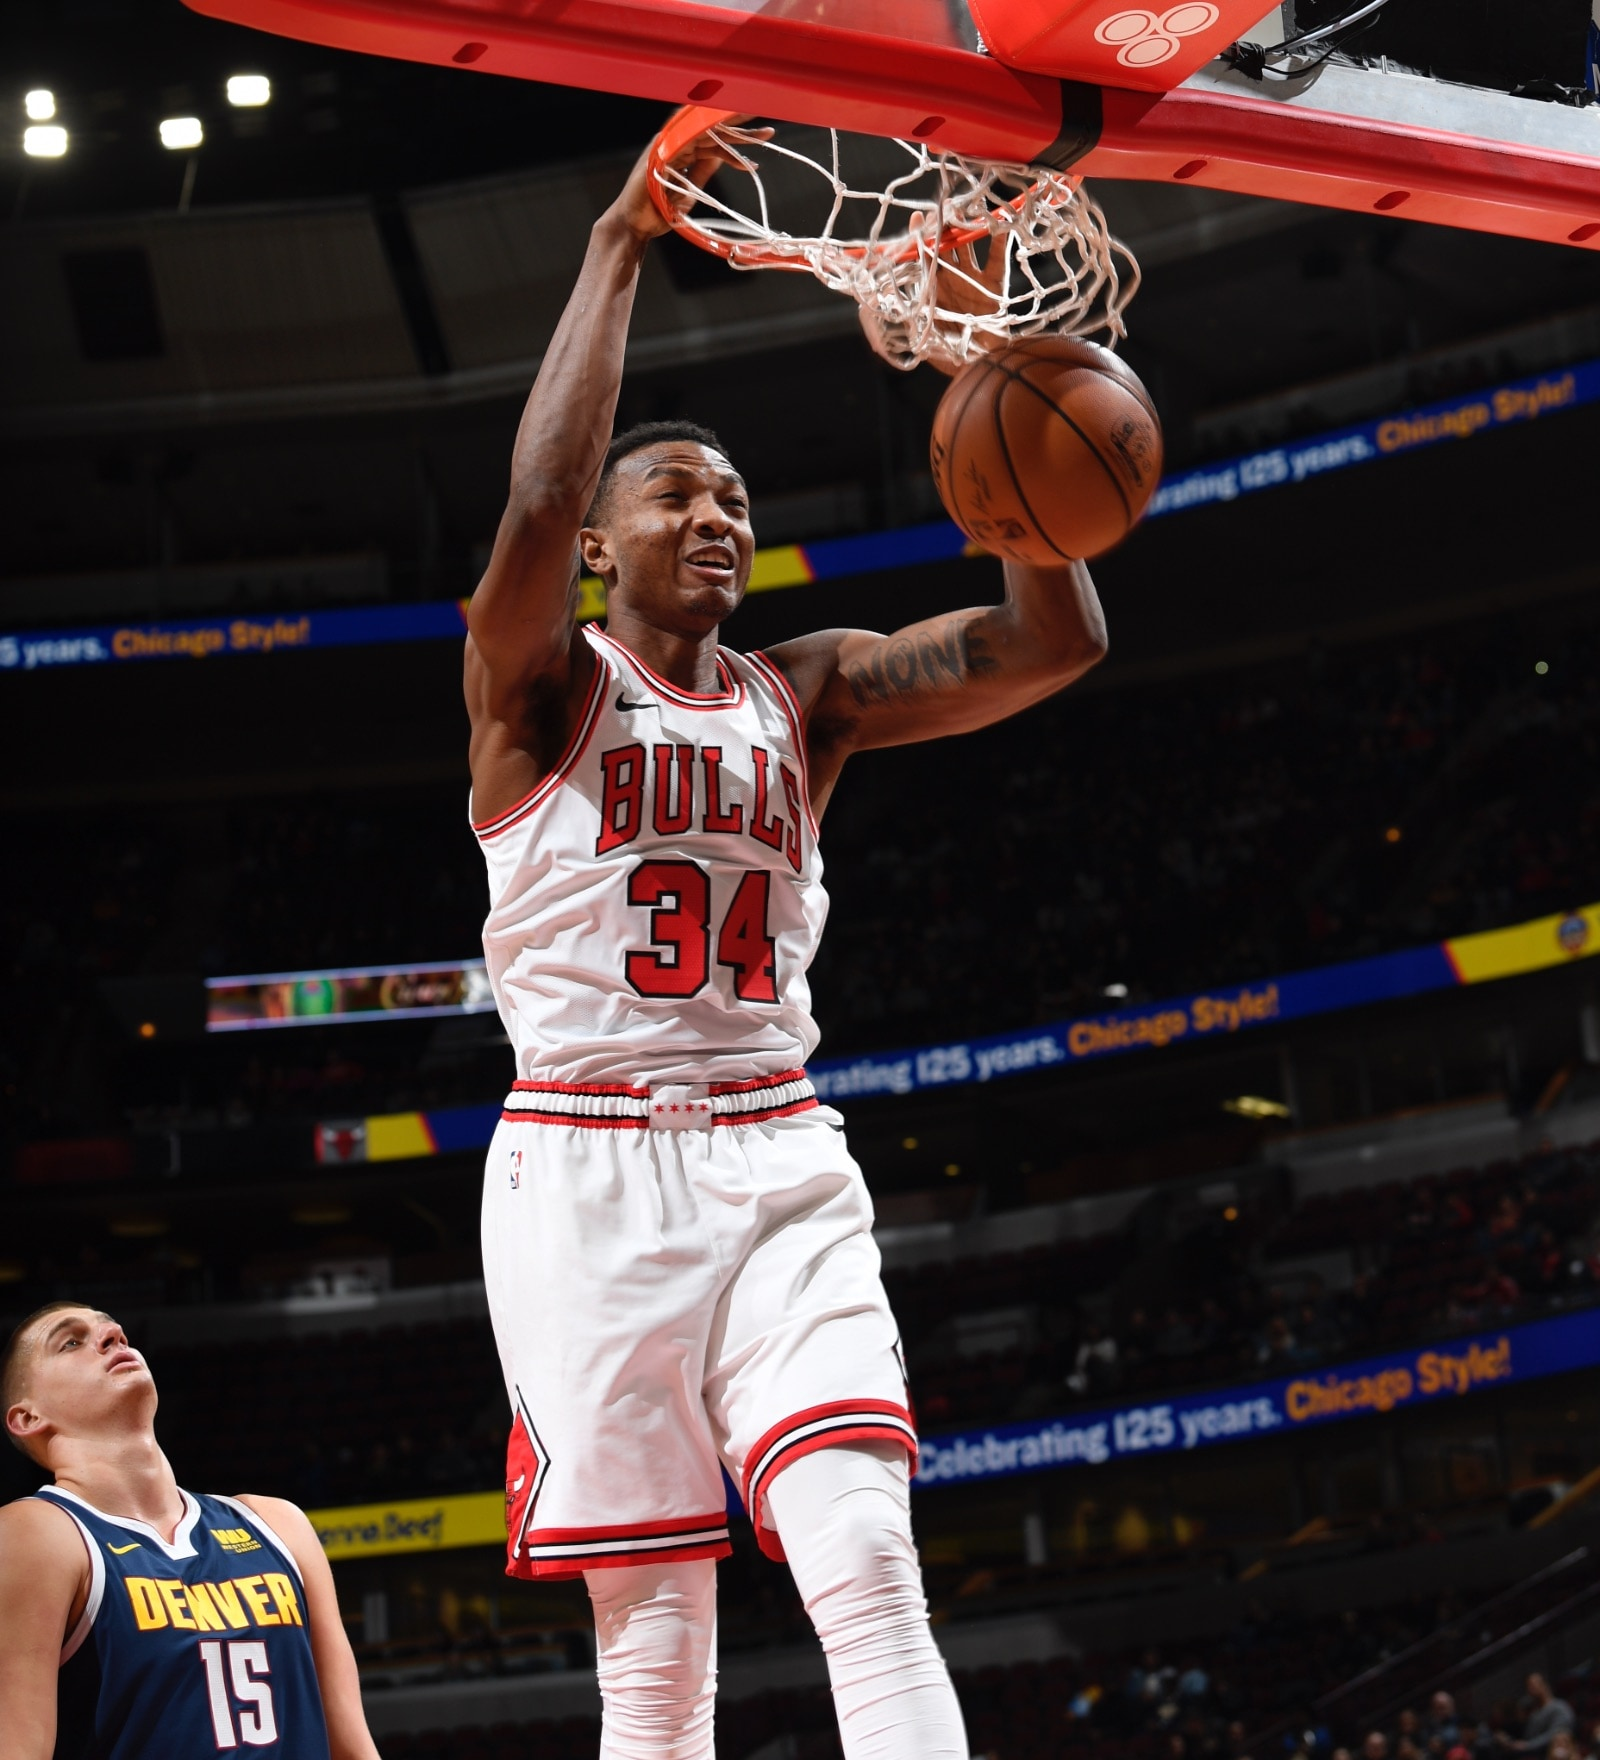 Wendell Carter Jr. throws down a big dunk against Denver